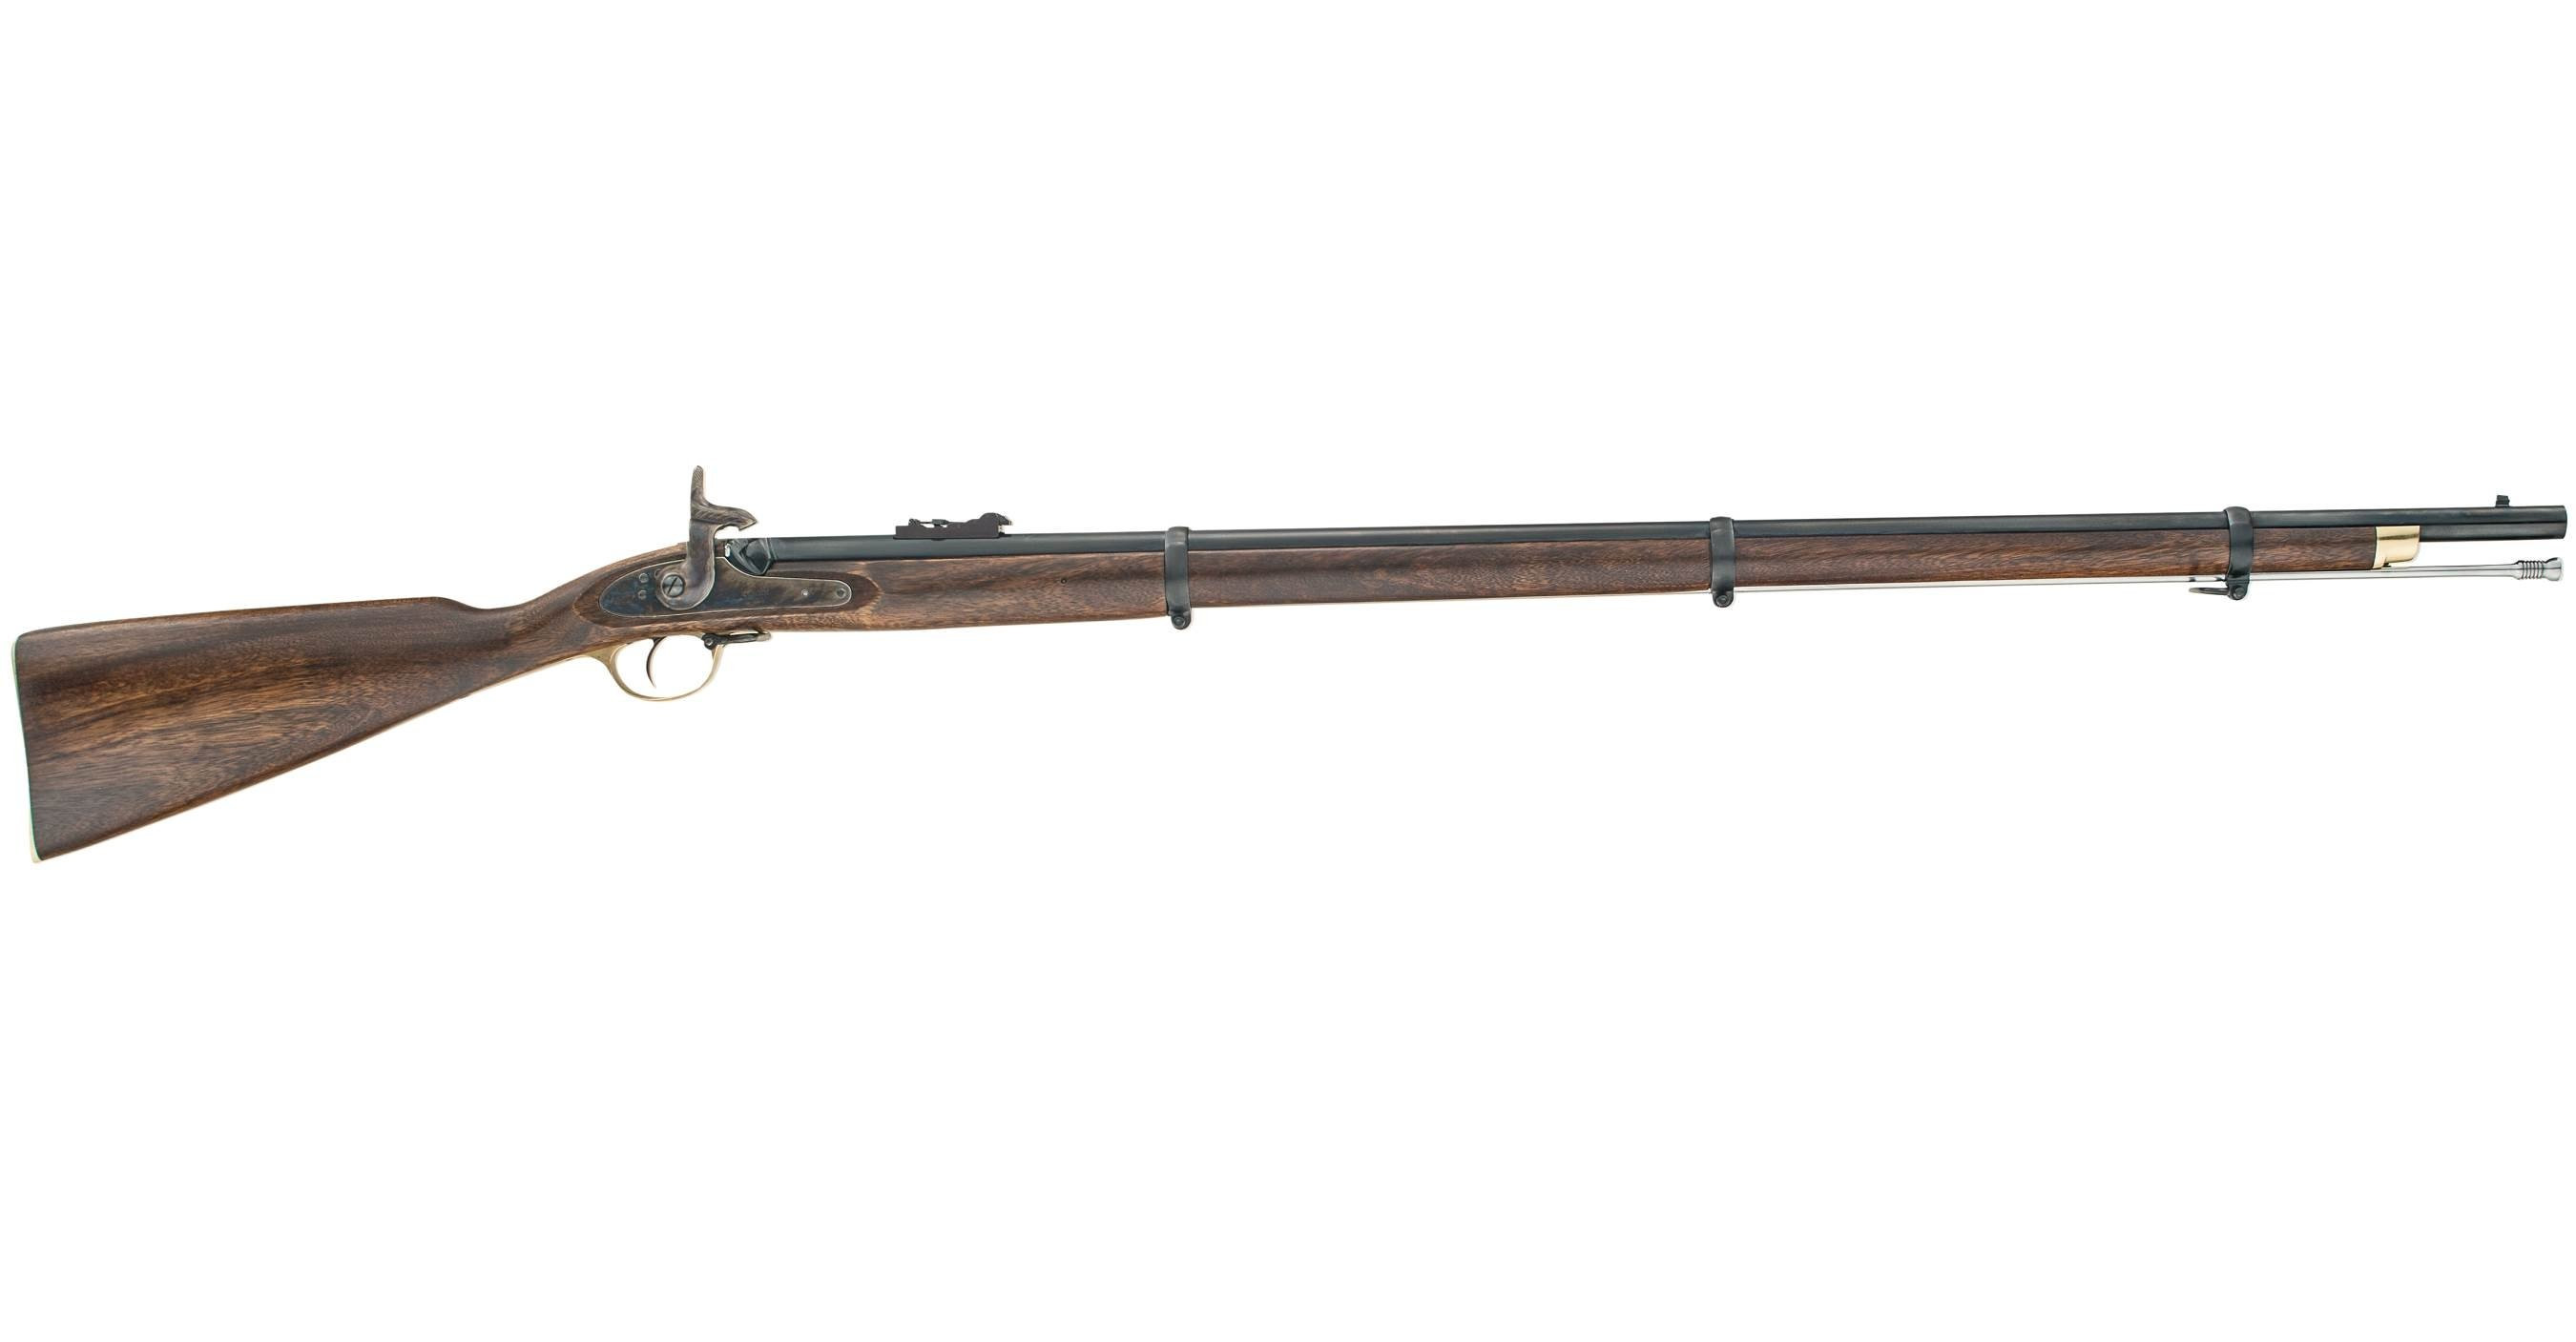 Traditions 1853 enfield musket build it yourself kit 58 cal traditions 1853 enfield musket build it yourself kit 58 cal smoothbore 39 barrel solutioingenieria Gallery